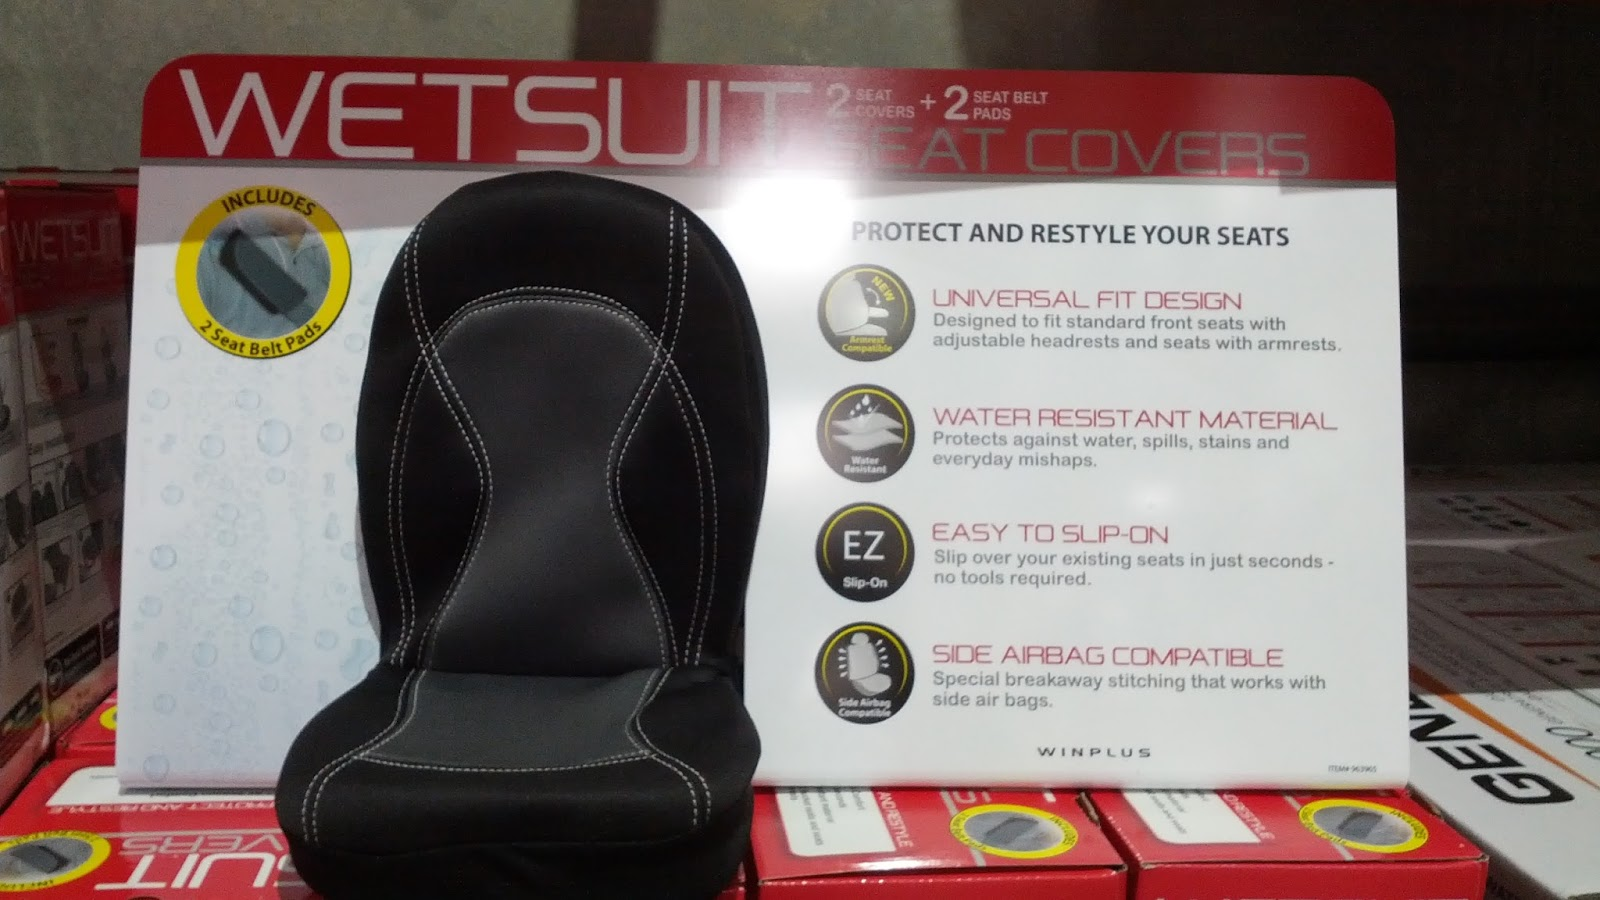 Winplus Wetsuit Seat Covers Protects Your Cars Seats